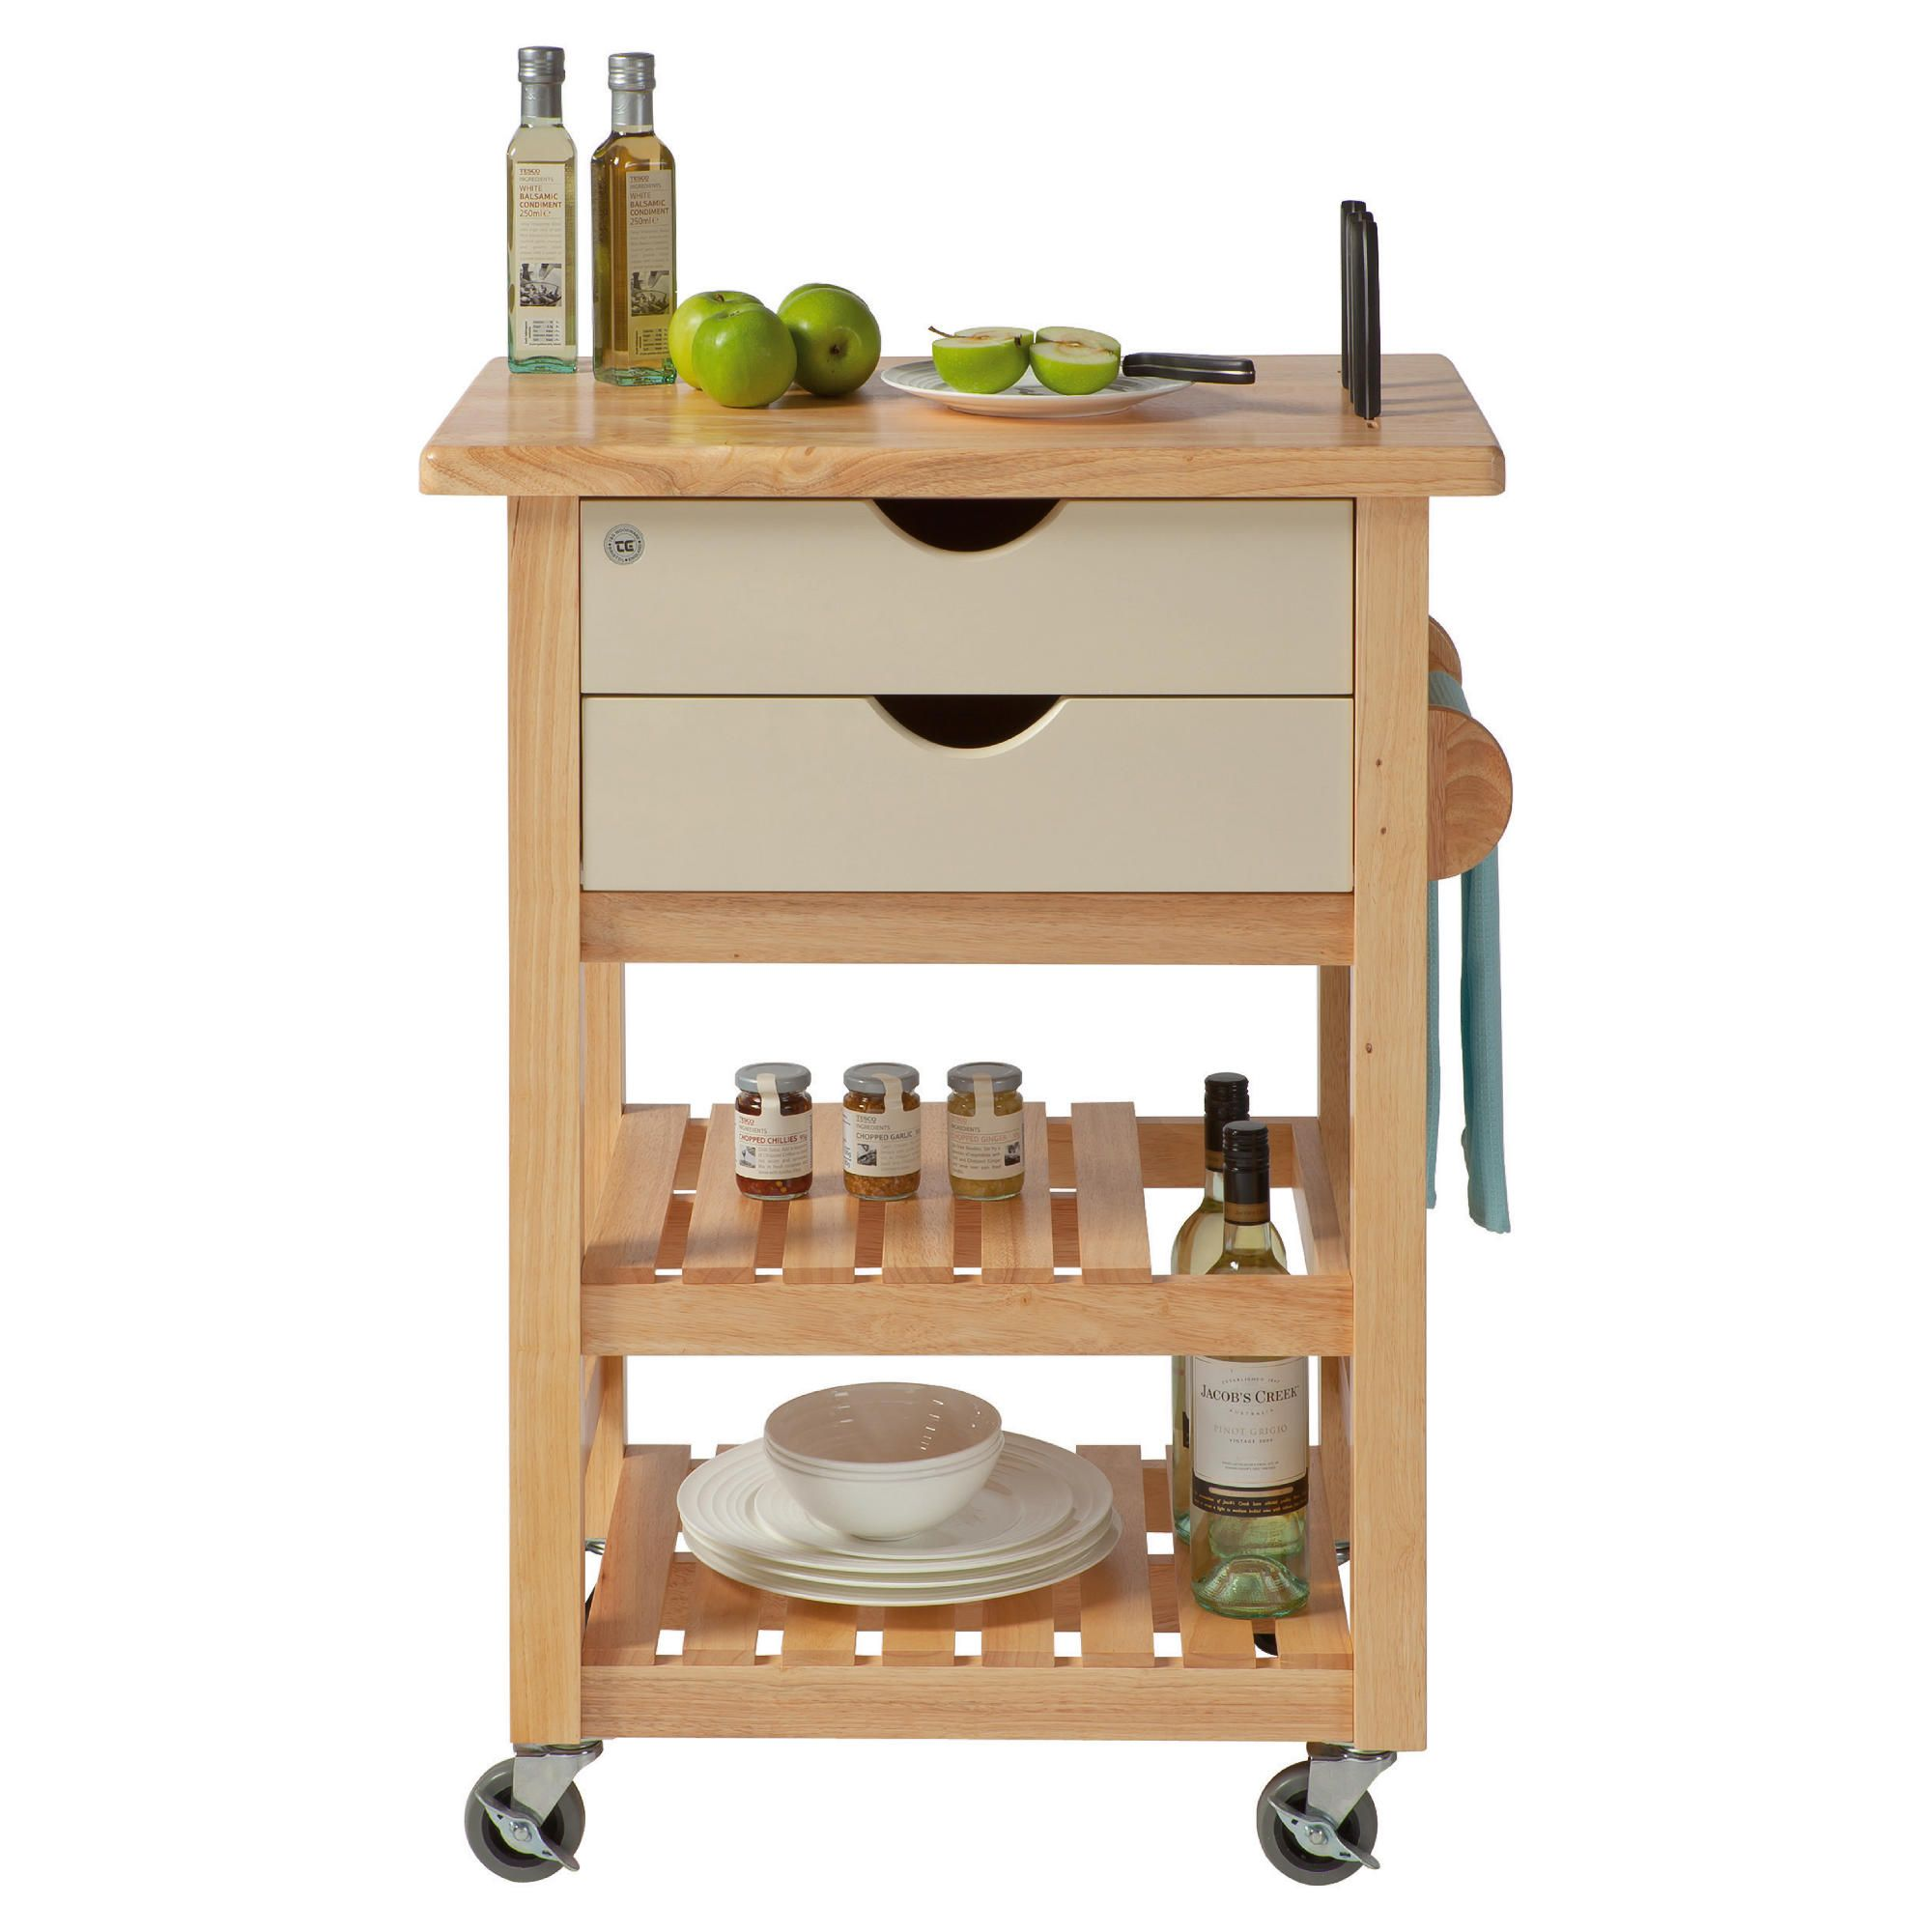 T&G Woodware Ltd Ashton Cream Trolley in Natural Hevea at Tescos Direct